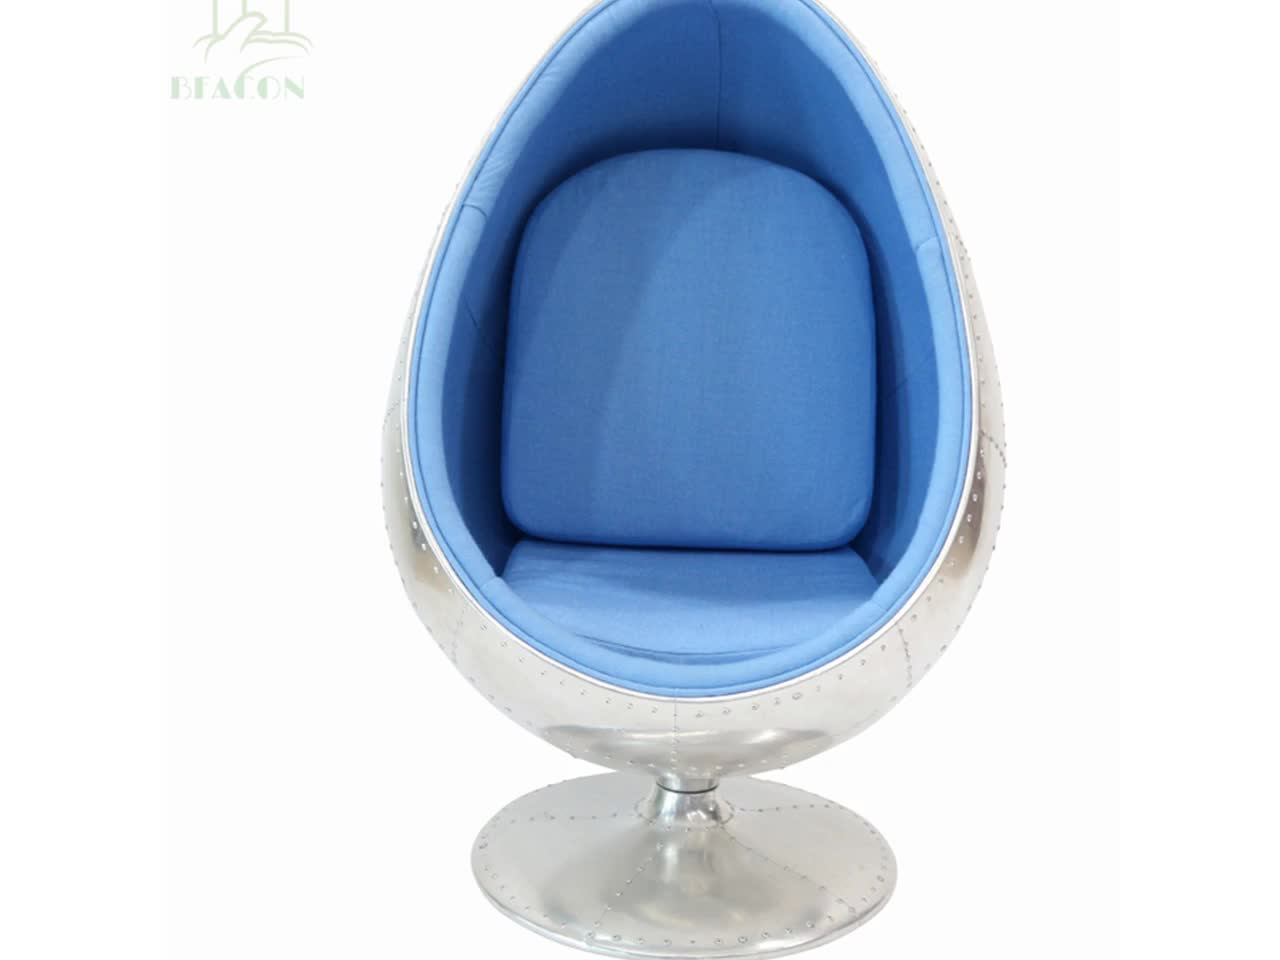 Affordable Egg Chair Cheap Egg Pod Chair For Sale Buy Used Egg Chair For Sale